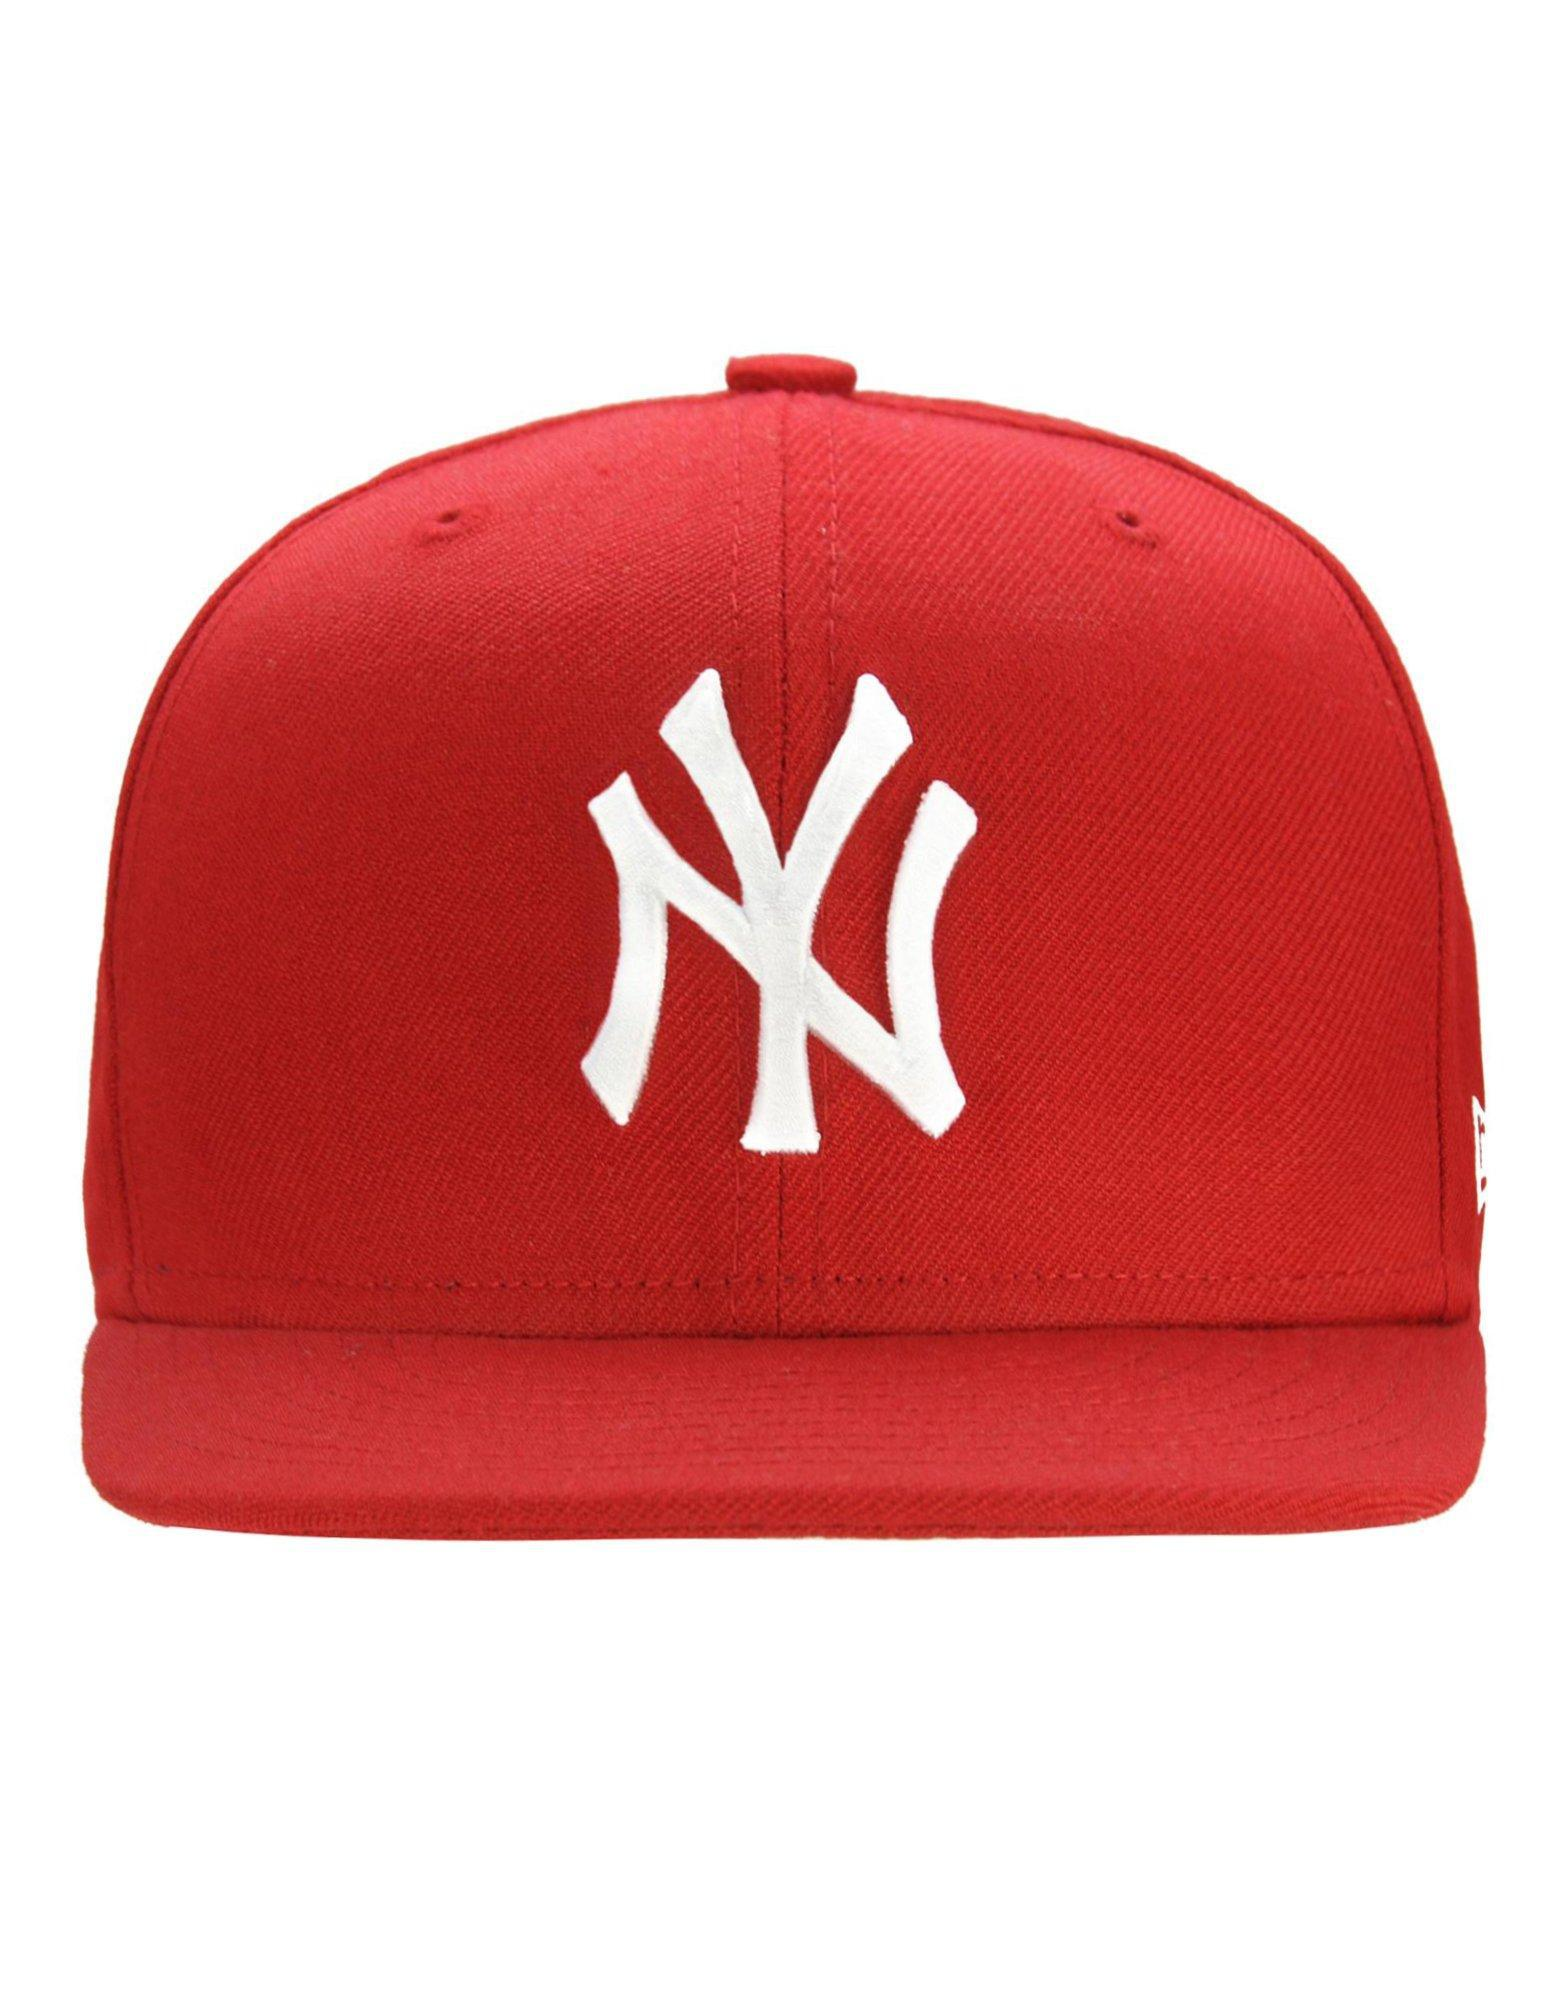 9996cdbd7a3 Lyst - KTZ Mlb New York Yankees 59fifty Fitted Cap in Red for Men